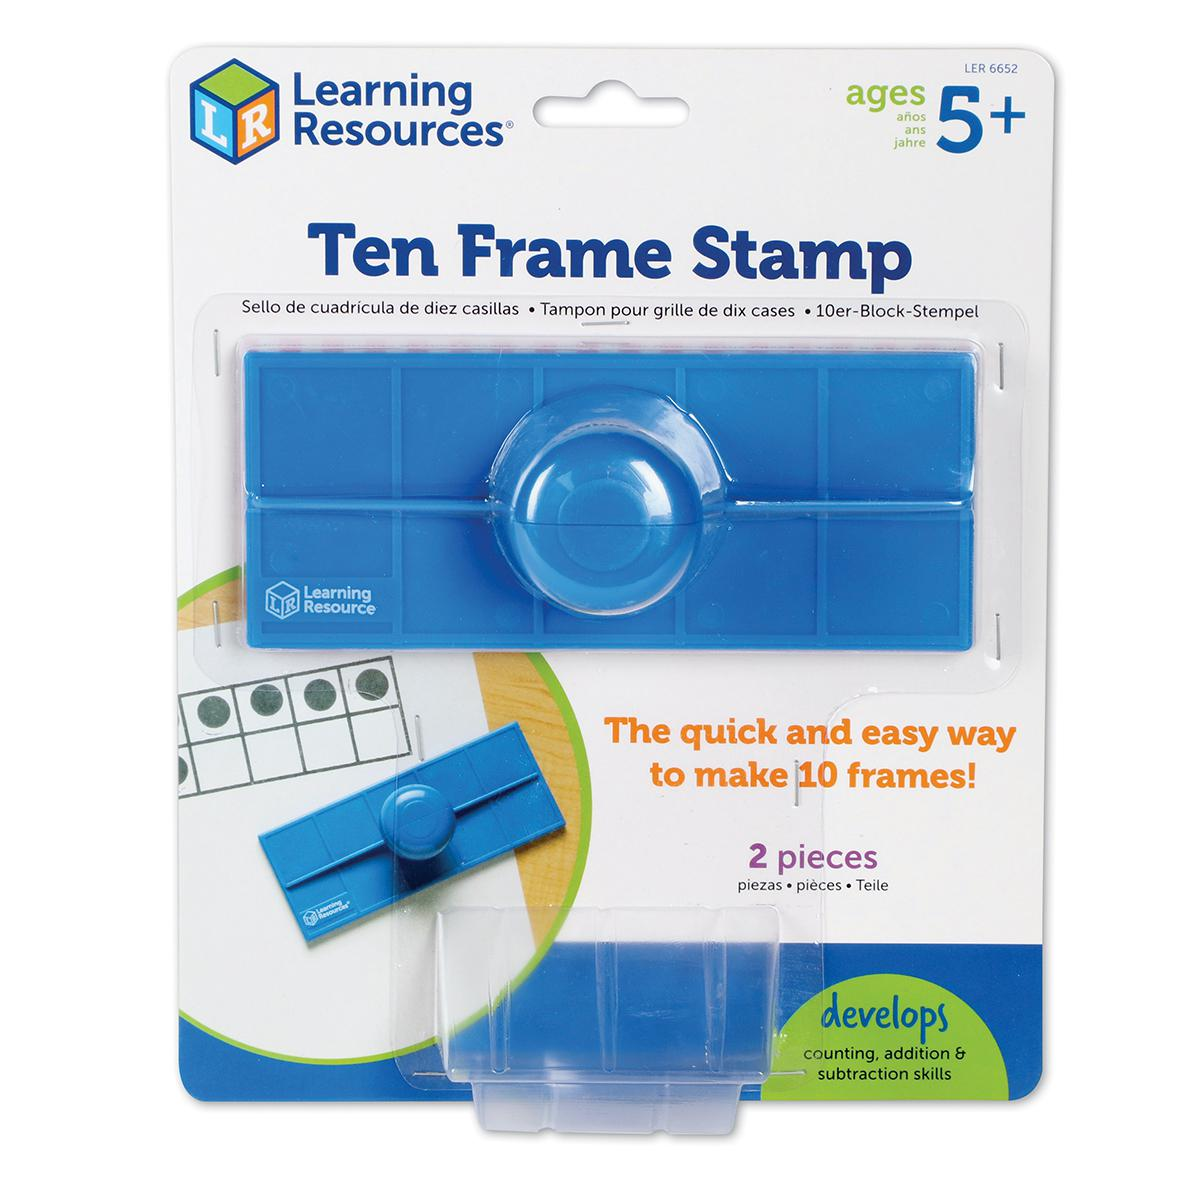 Ten-Frame Stamp